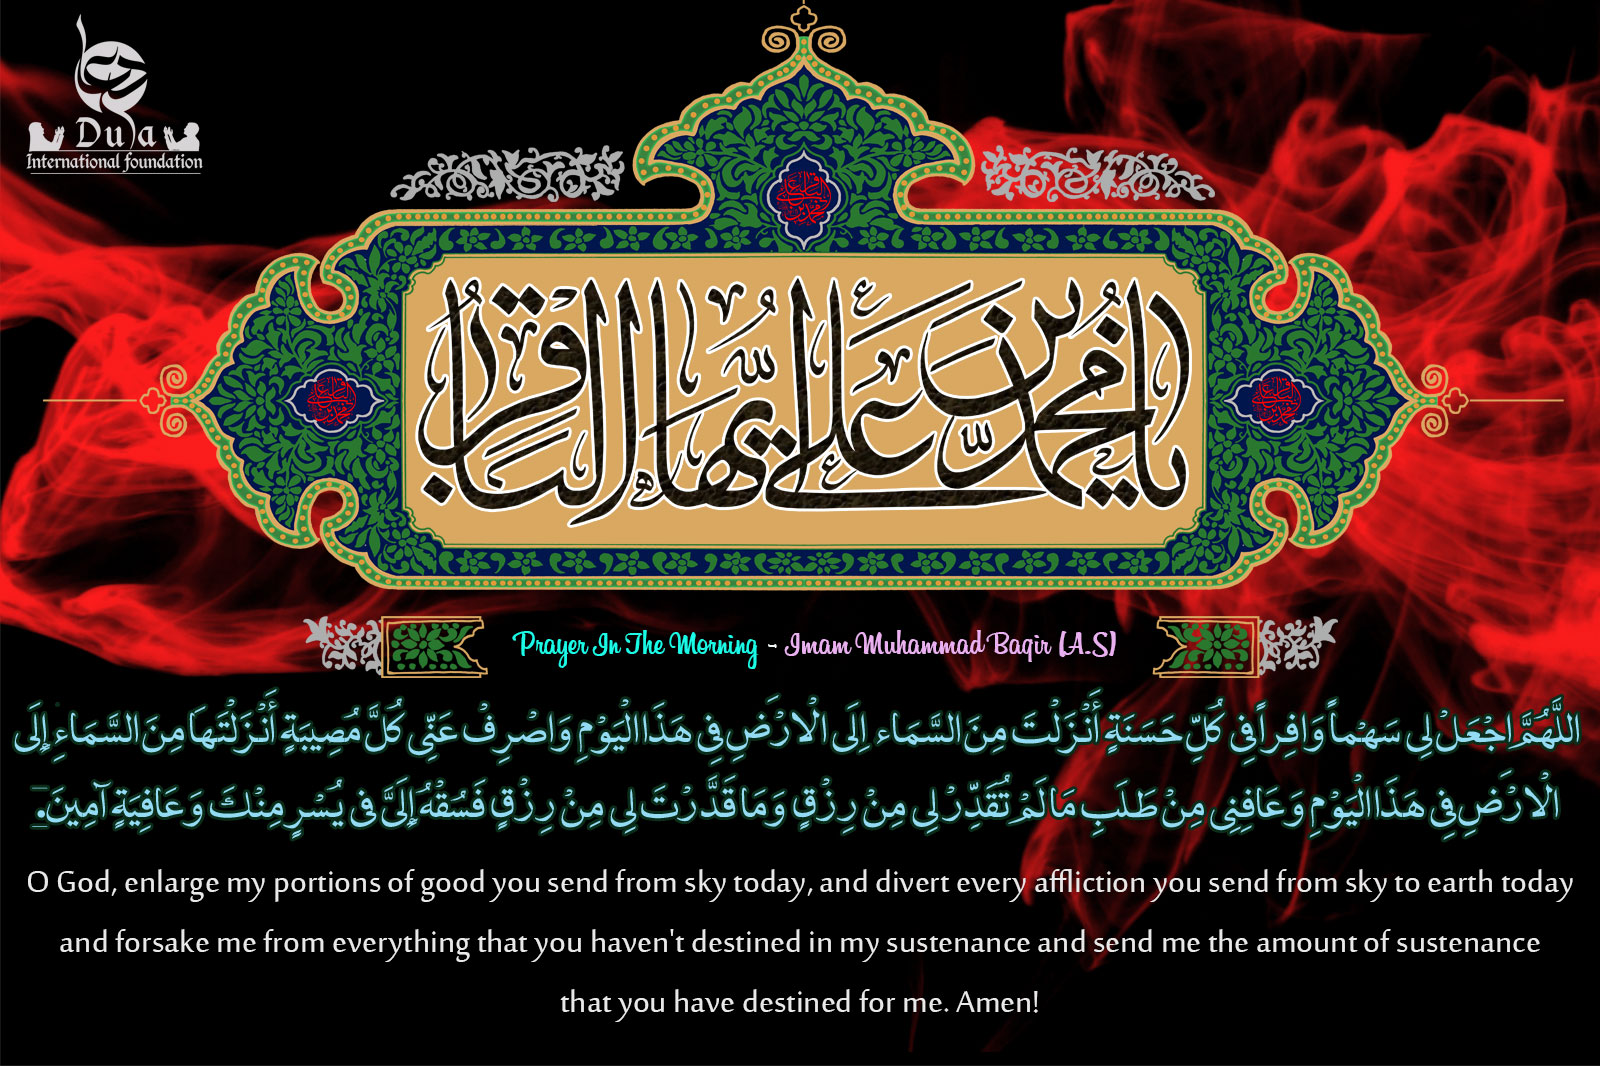 Prayer in the Morning from Imam Al-Baqir (A.S)  Prayer in morning imam baqir